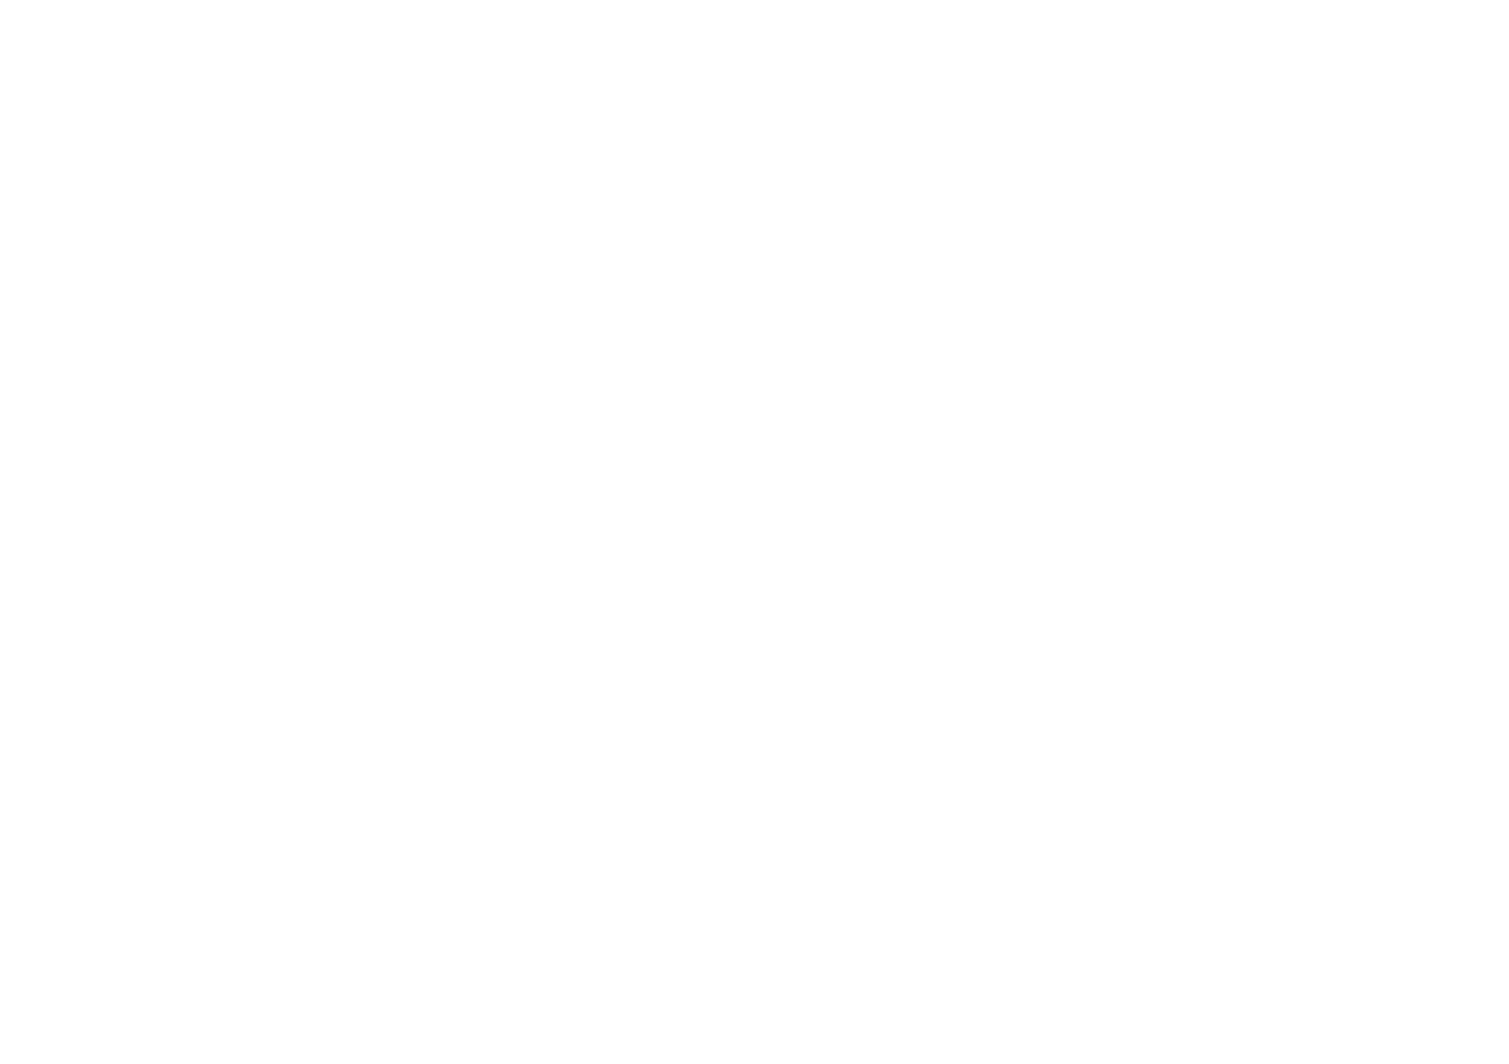 Synth Patrol